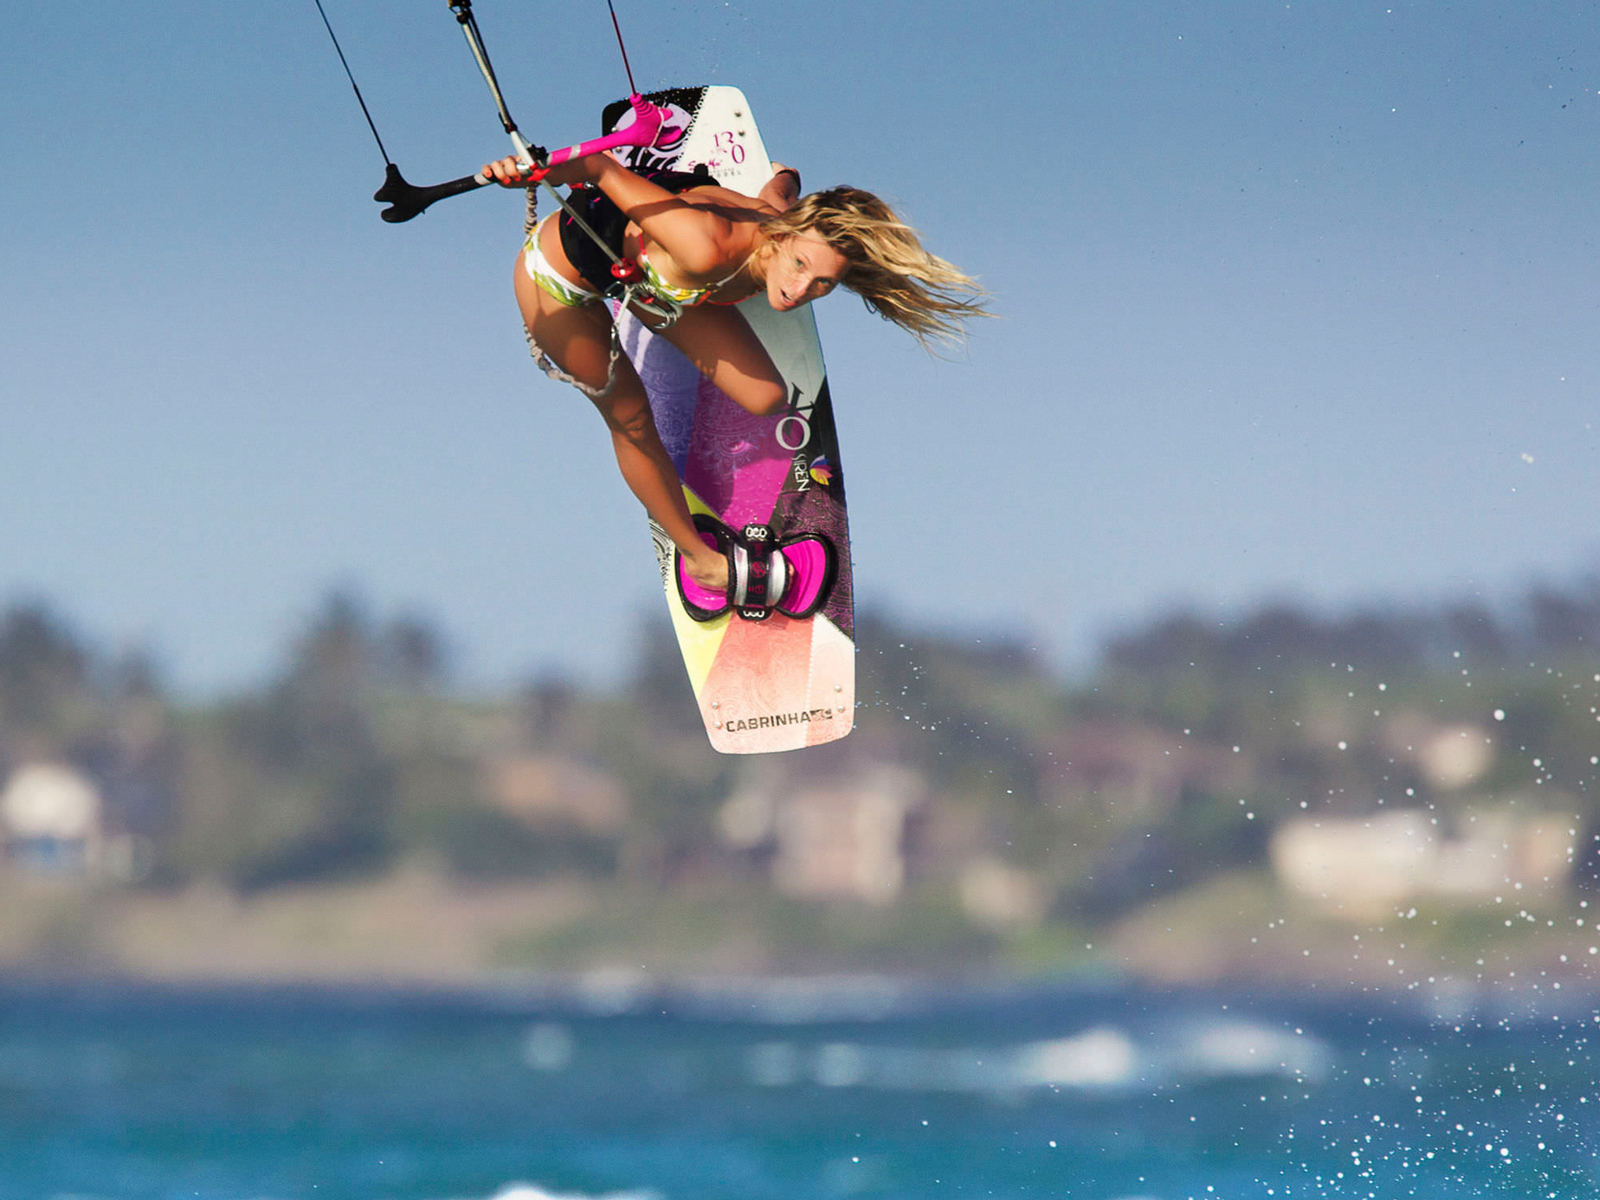 kitesurf wallpaper image - Susi Mai showing how it's done. - in resolution: Standard 4:3 1600 X 1200